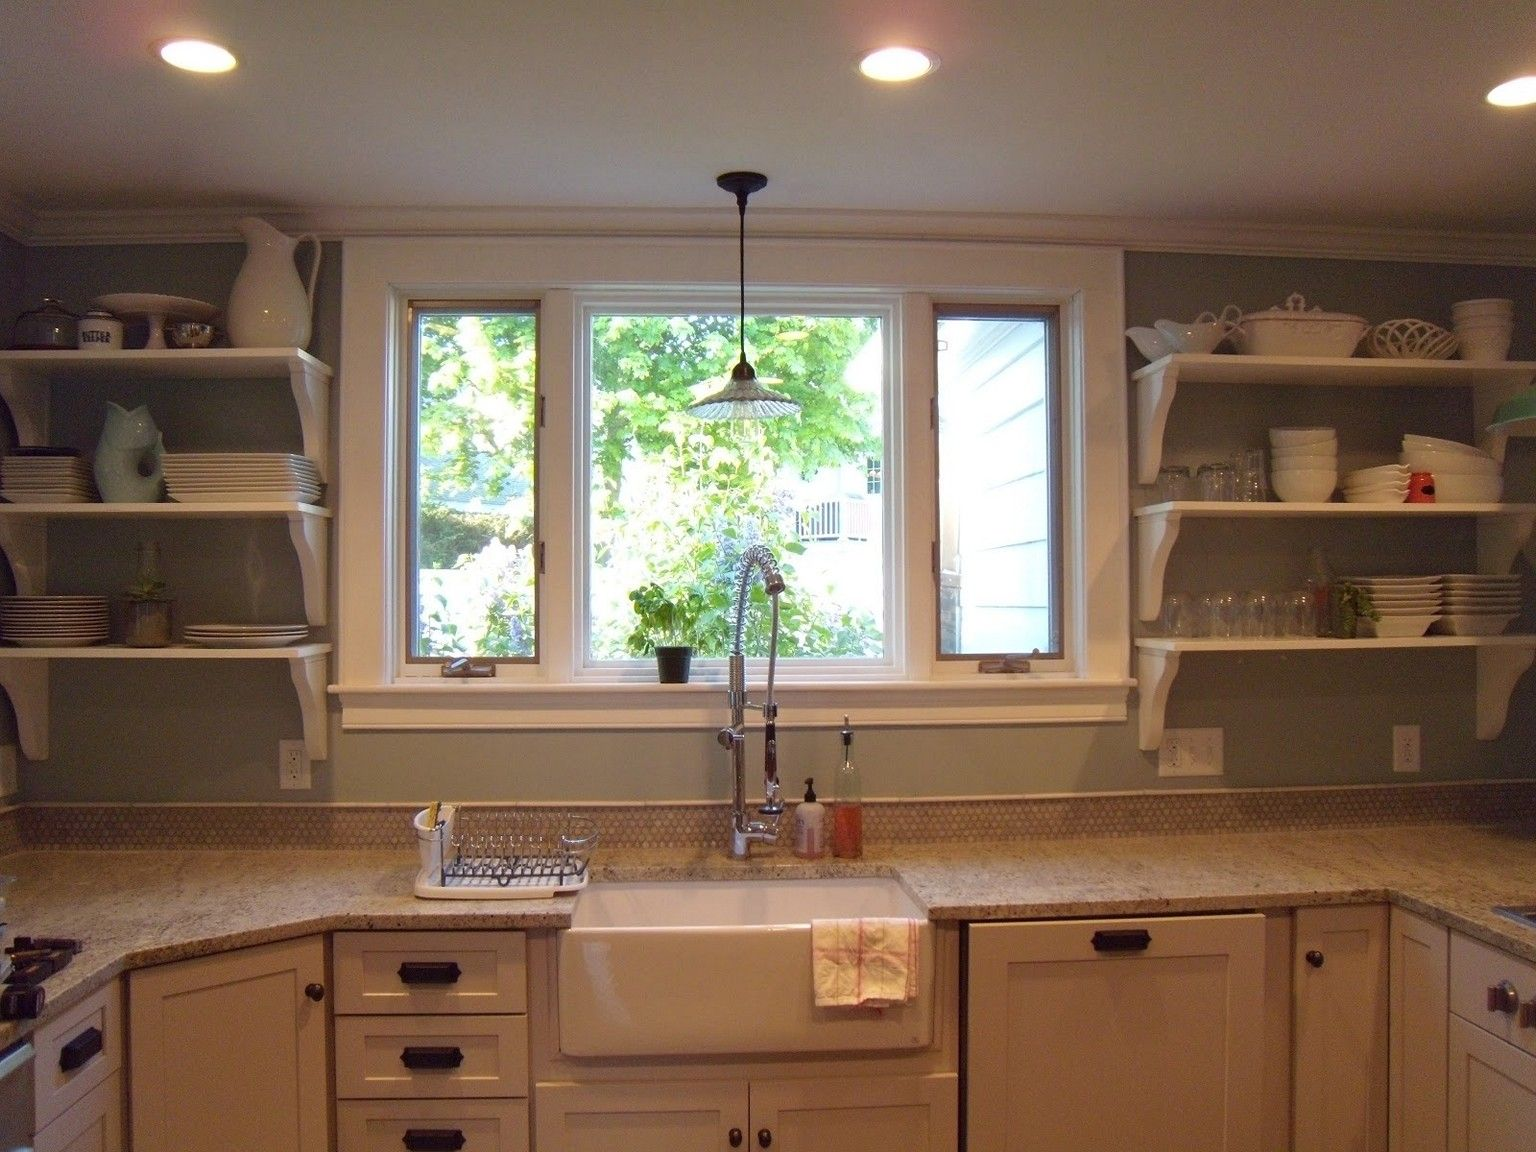 Some kitchen window ideas for your home pictures amp tips for Some kitchen designs